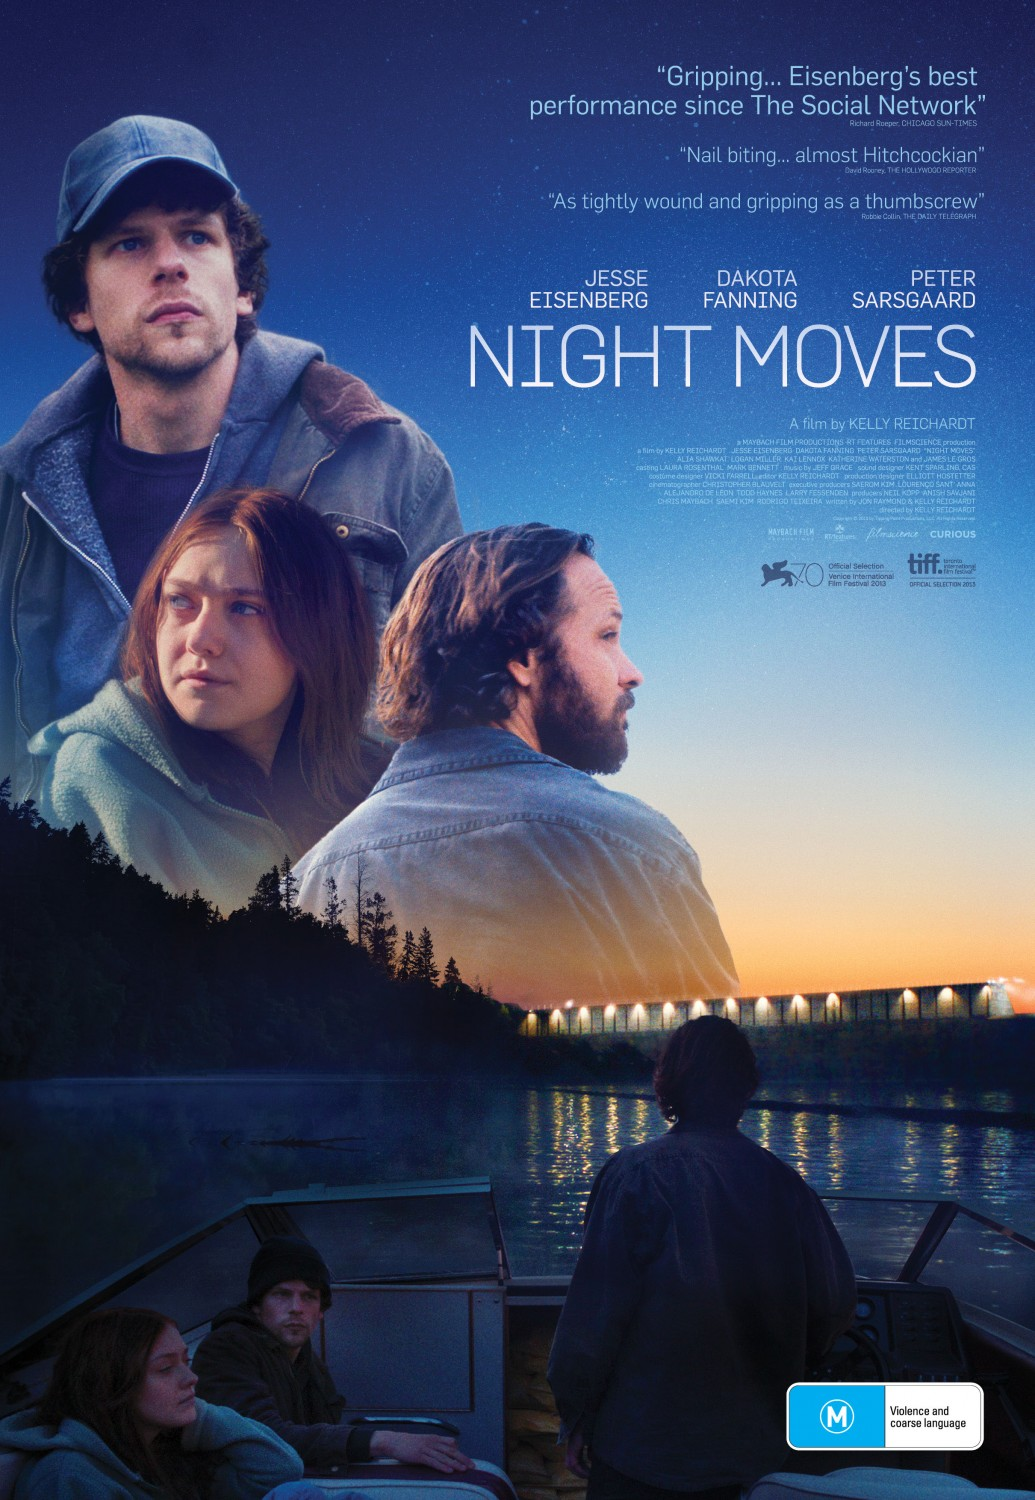 13-night_moves